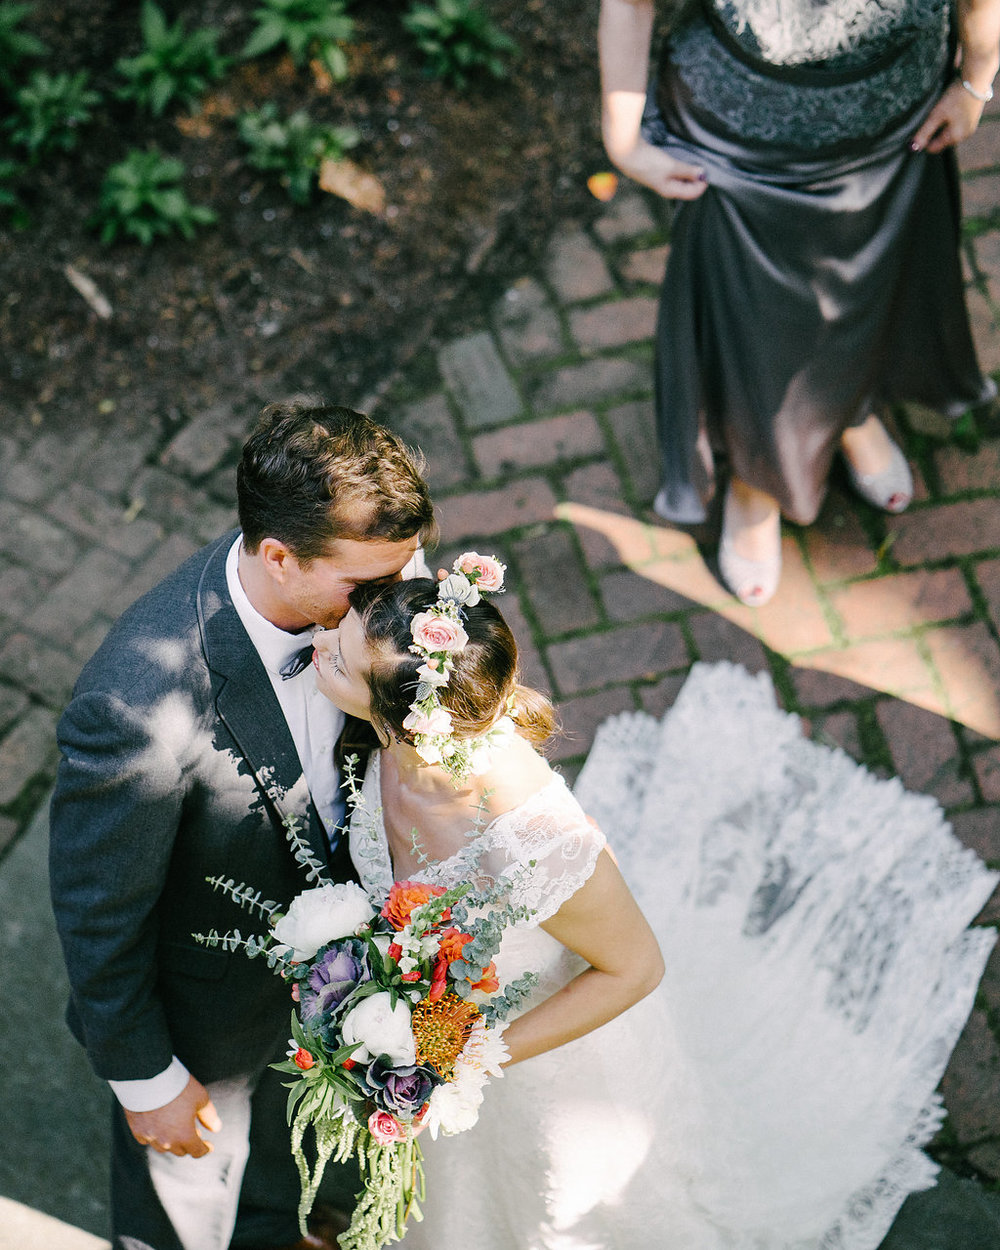 Heather+Matt|HaywoodHall,NC-191.jpg